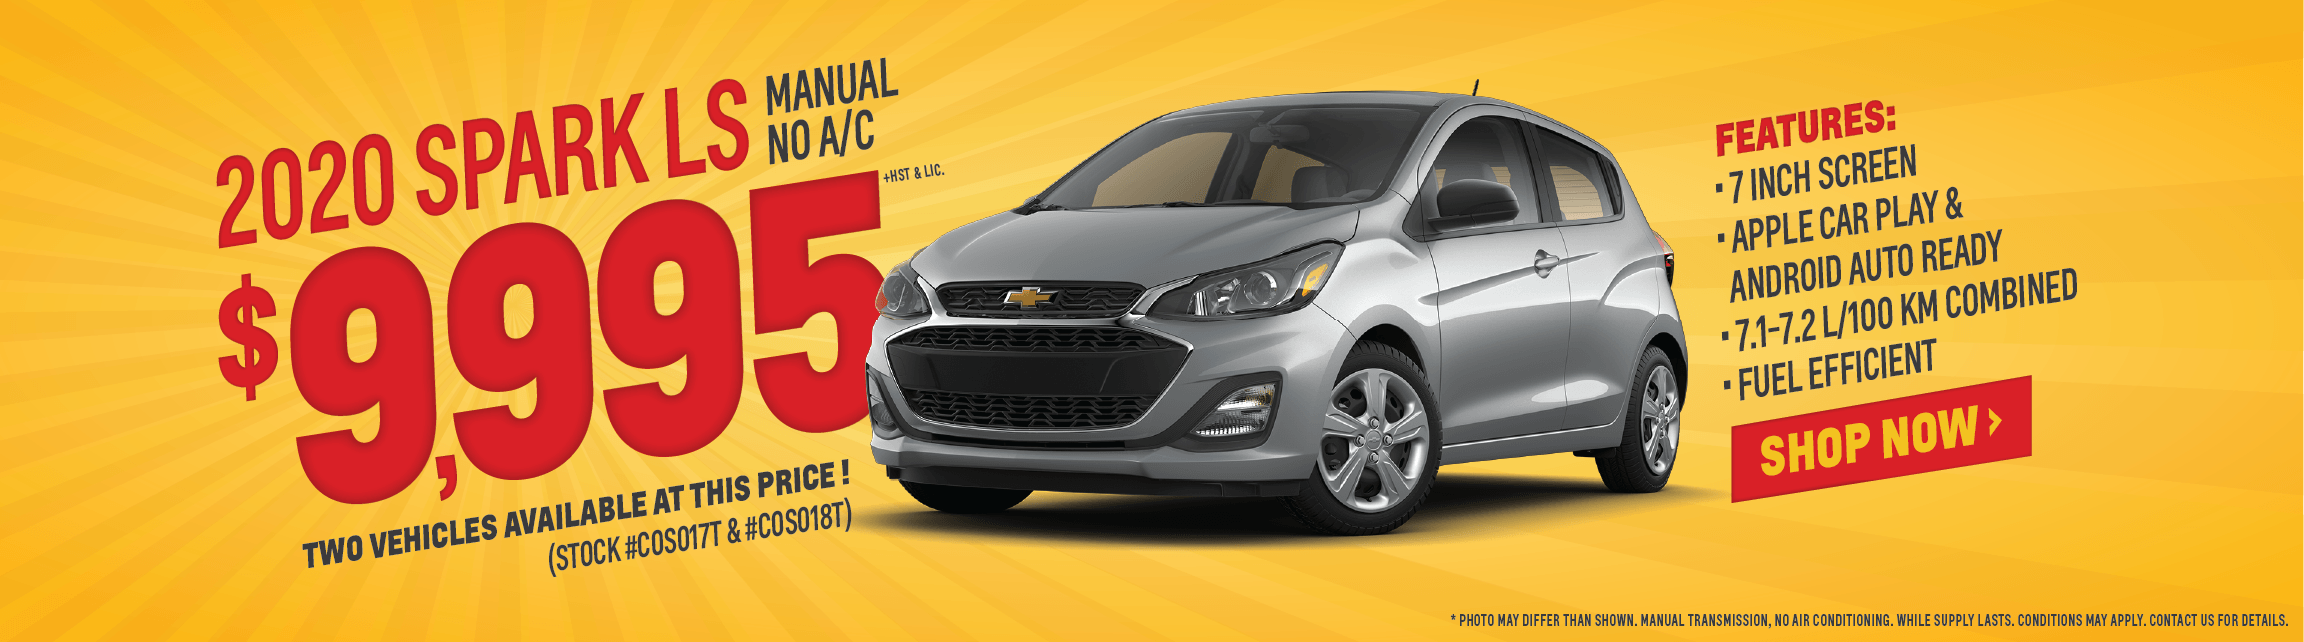 Chevrolet Spark offer at Applewood Auto